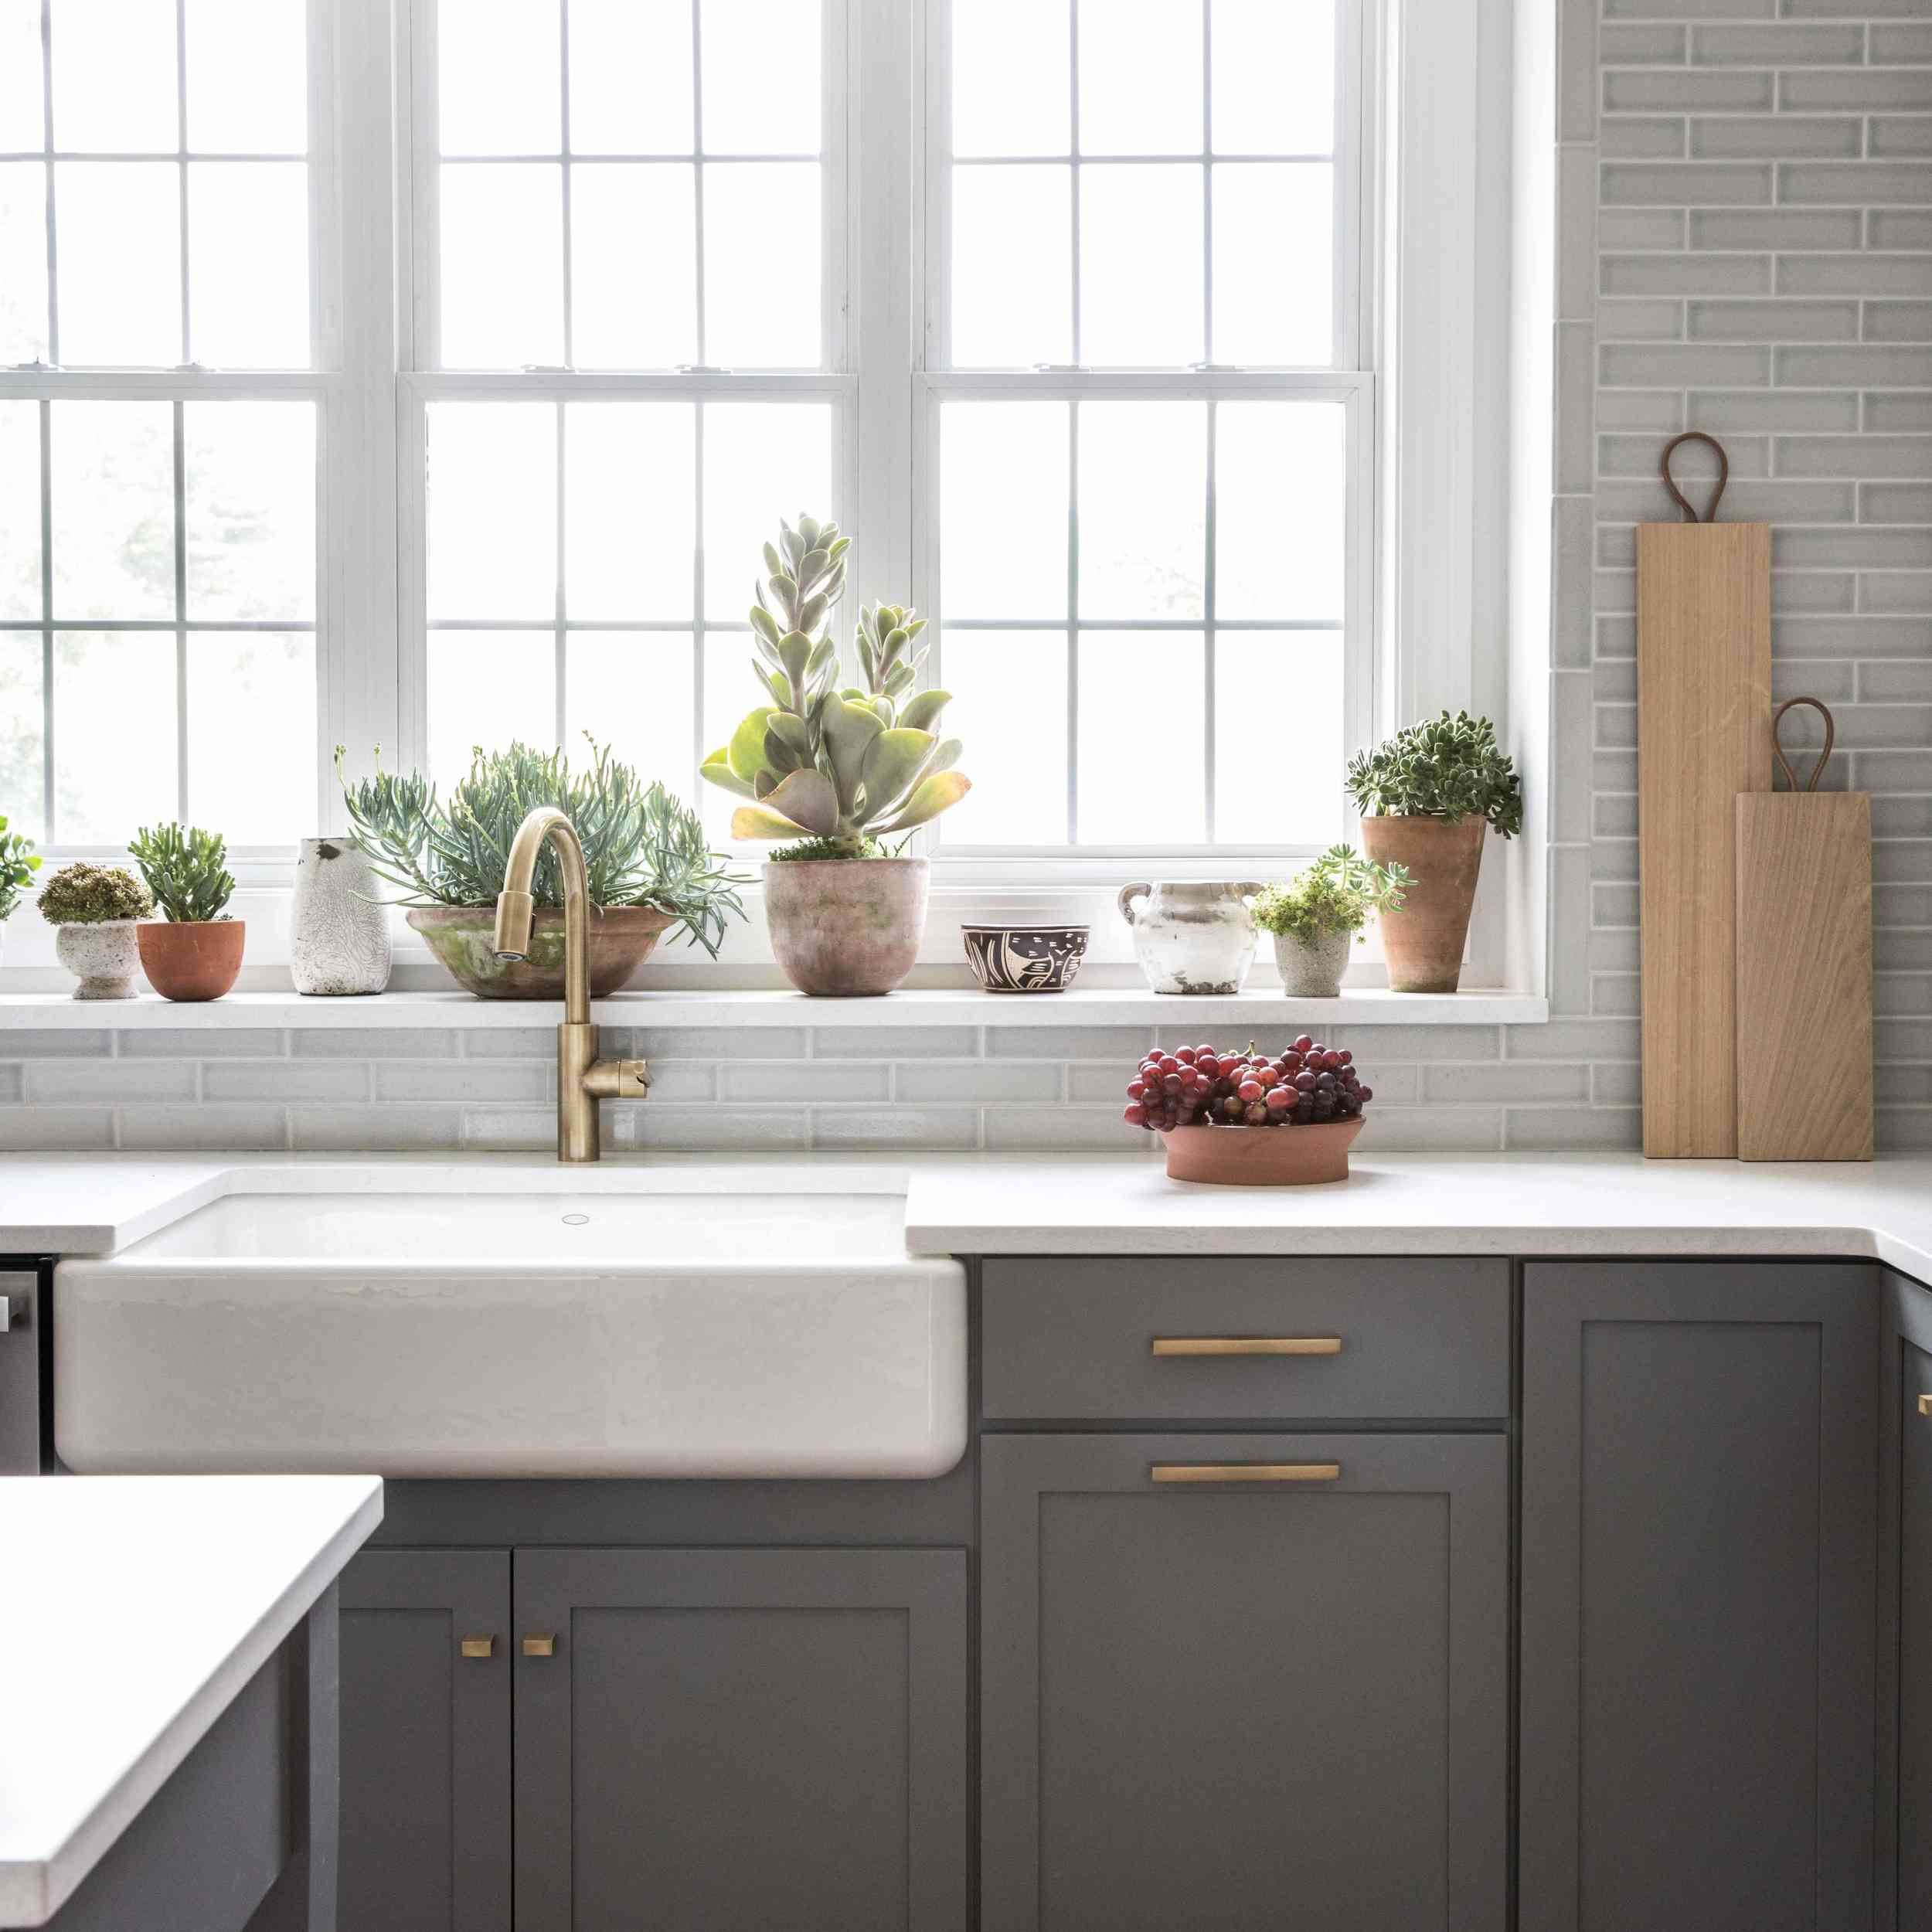 A kitchen with gray cabinets